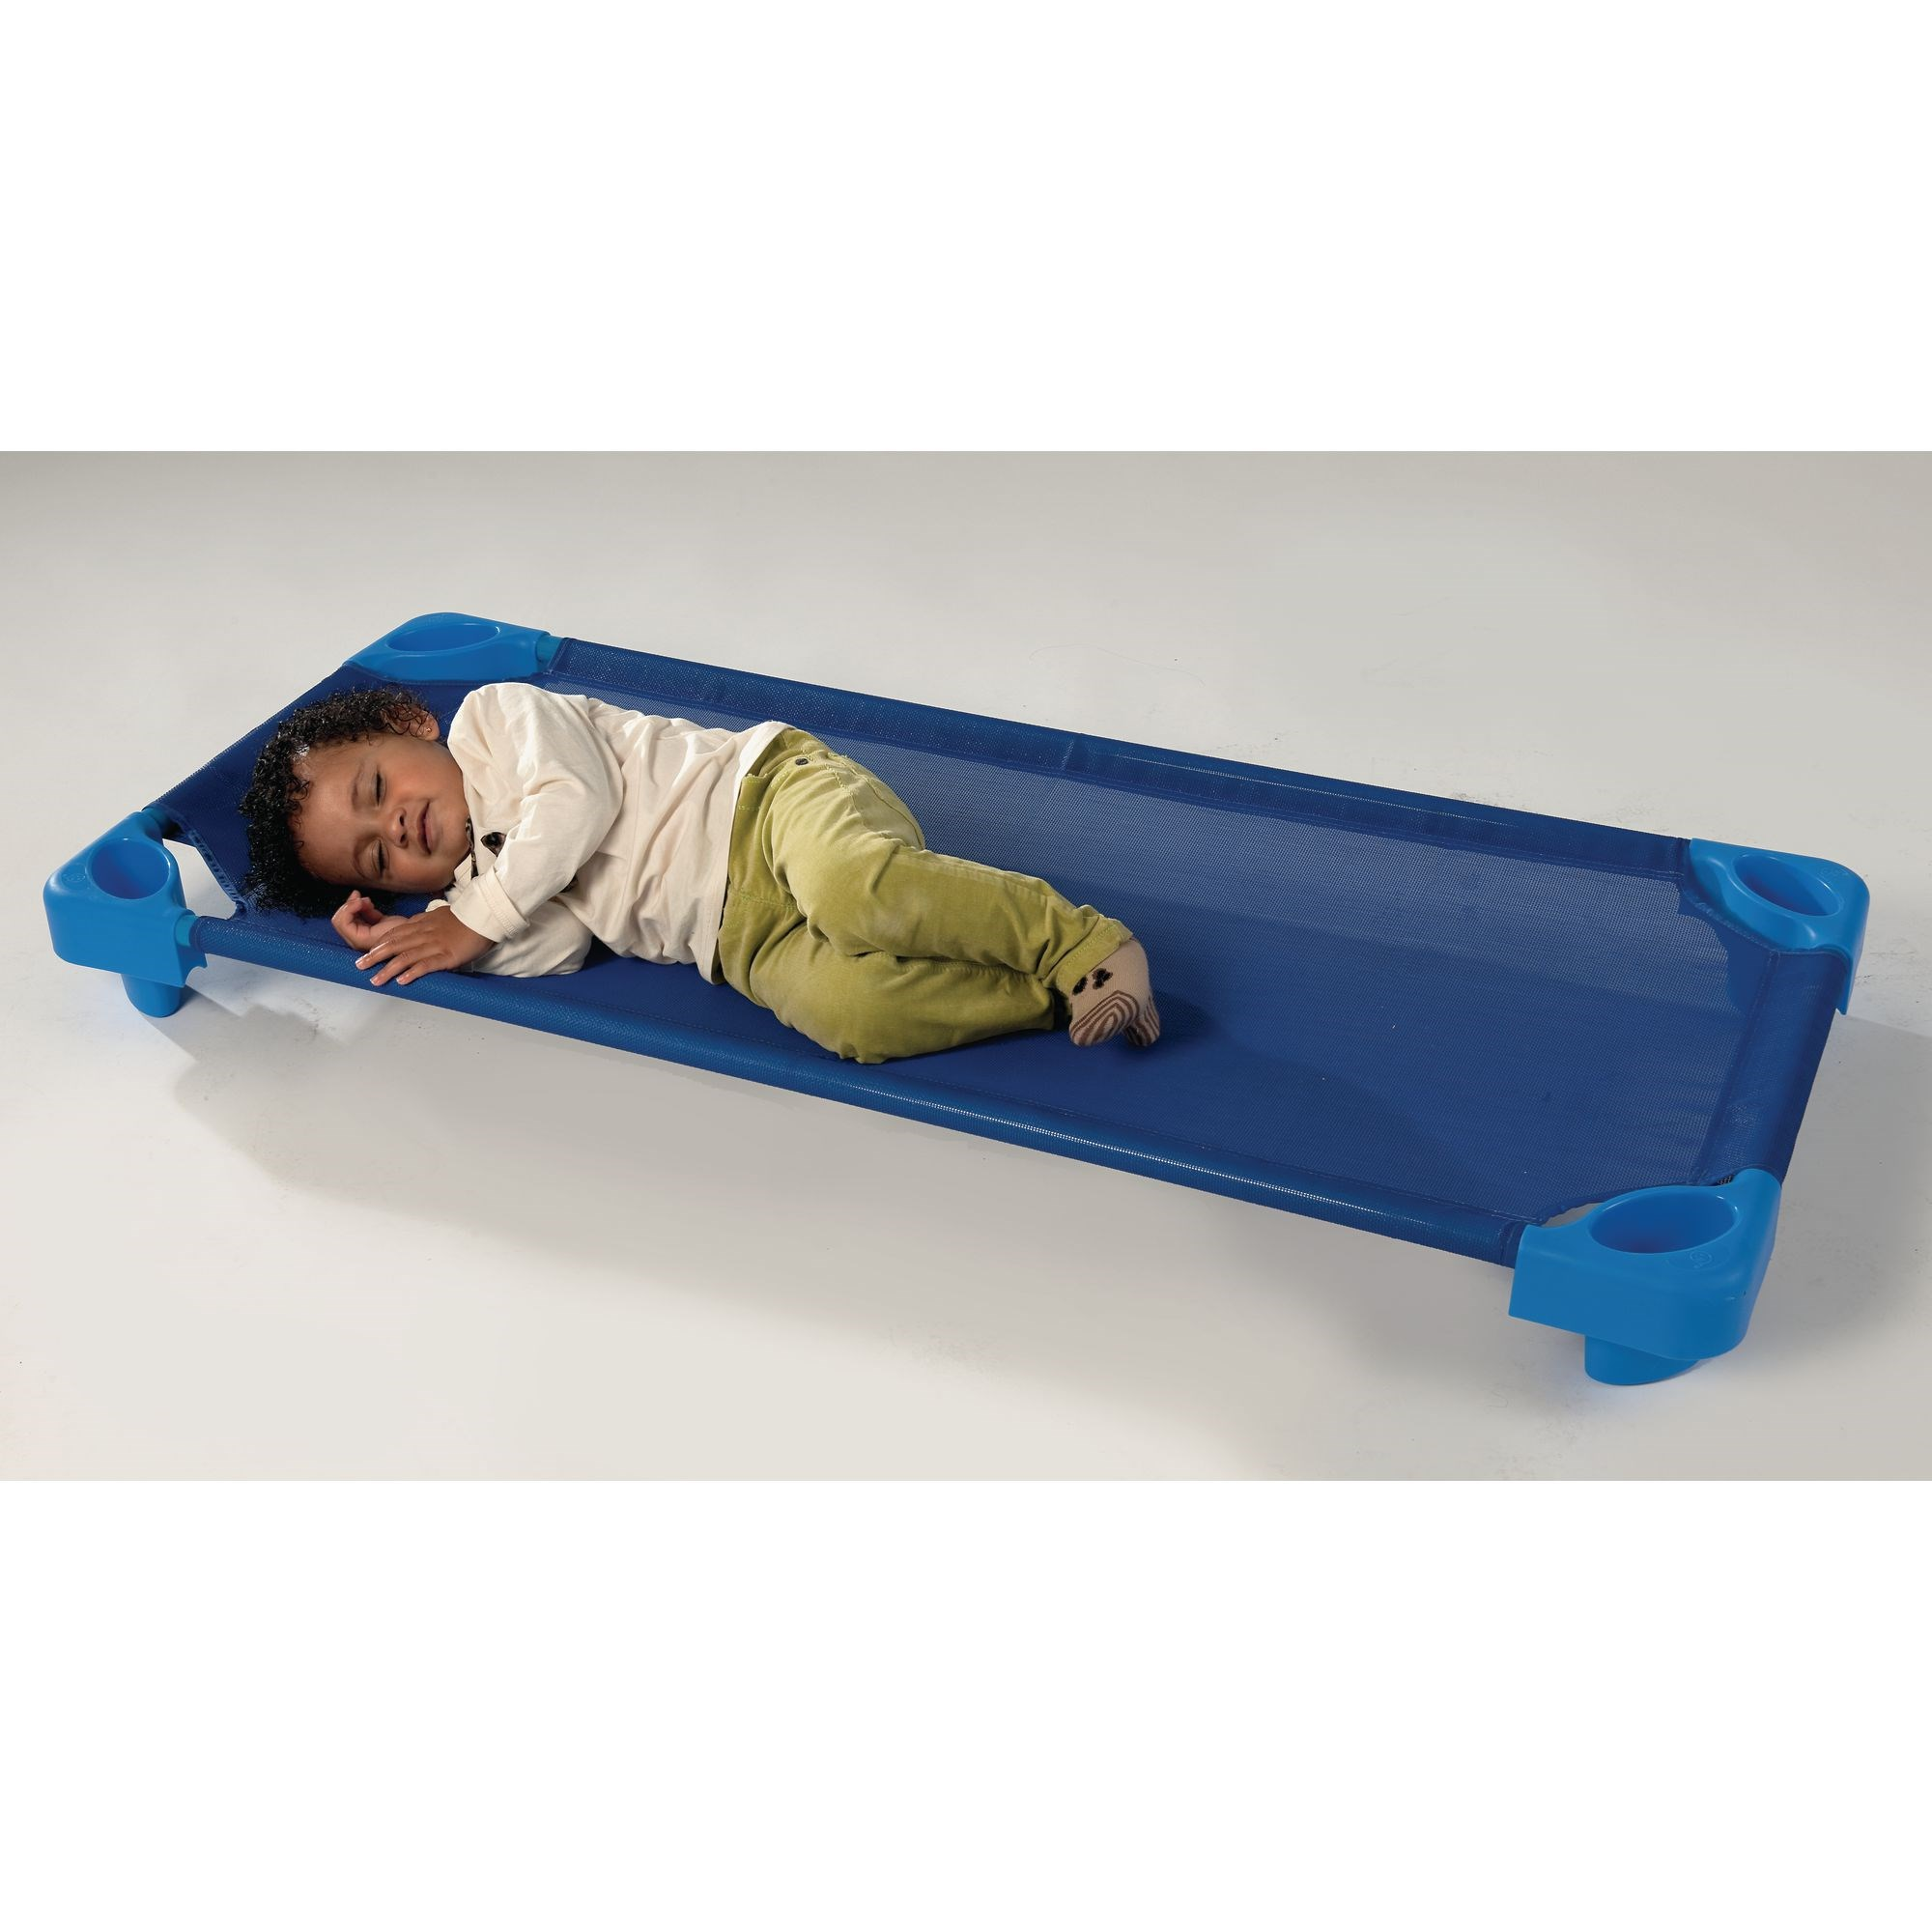 Nursery Rest Bed